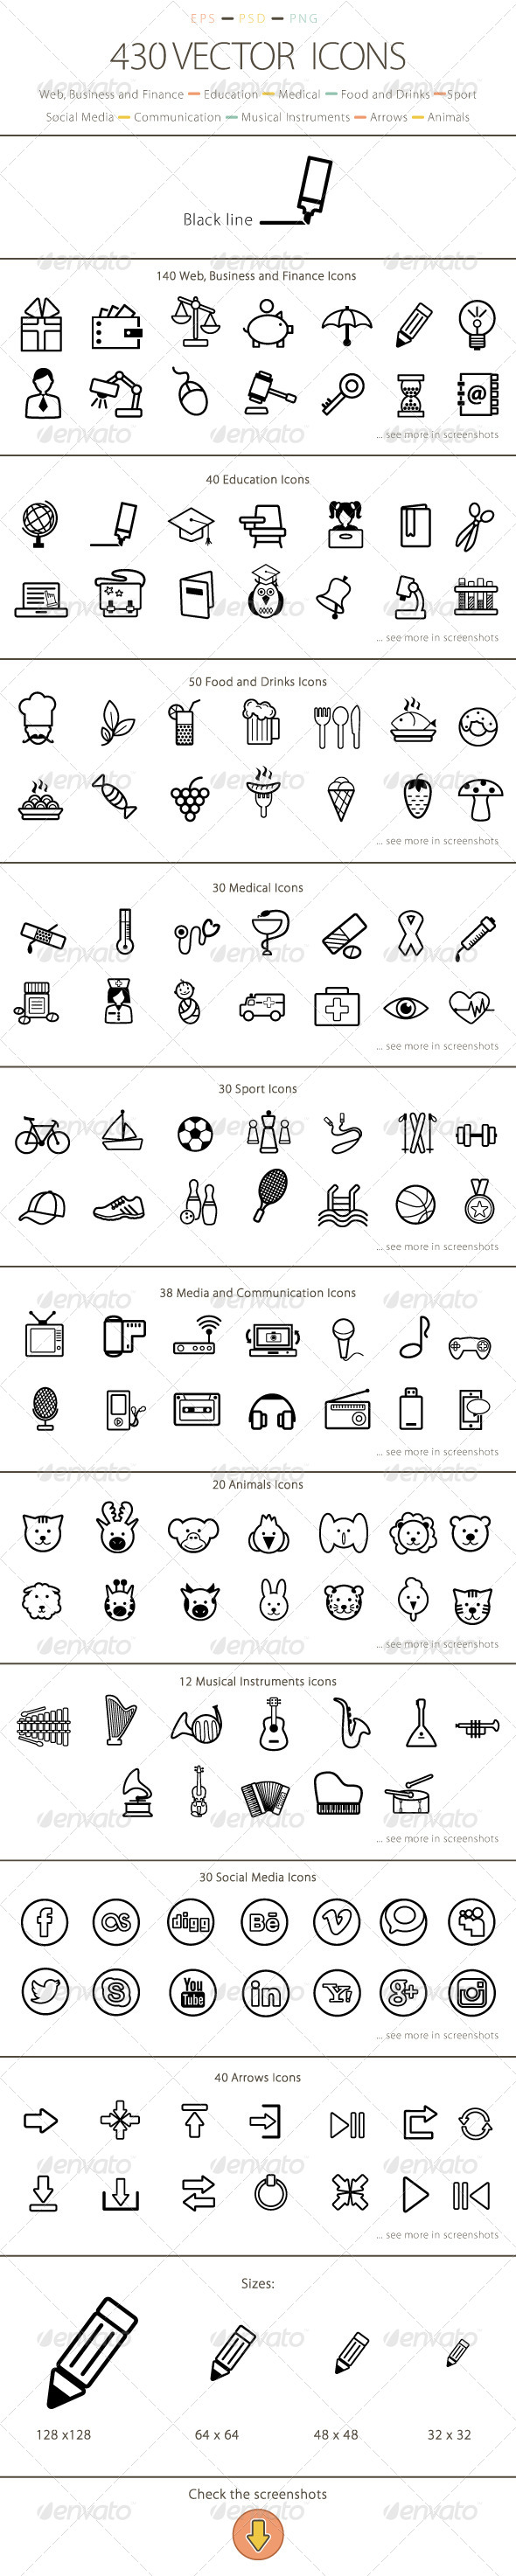 GraphicRiver Set of 430 Vector Icons Black Line 6193118